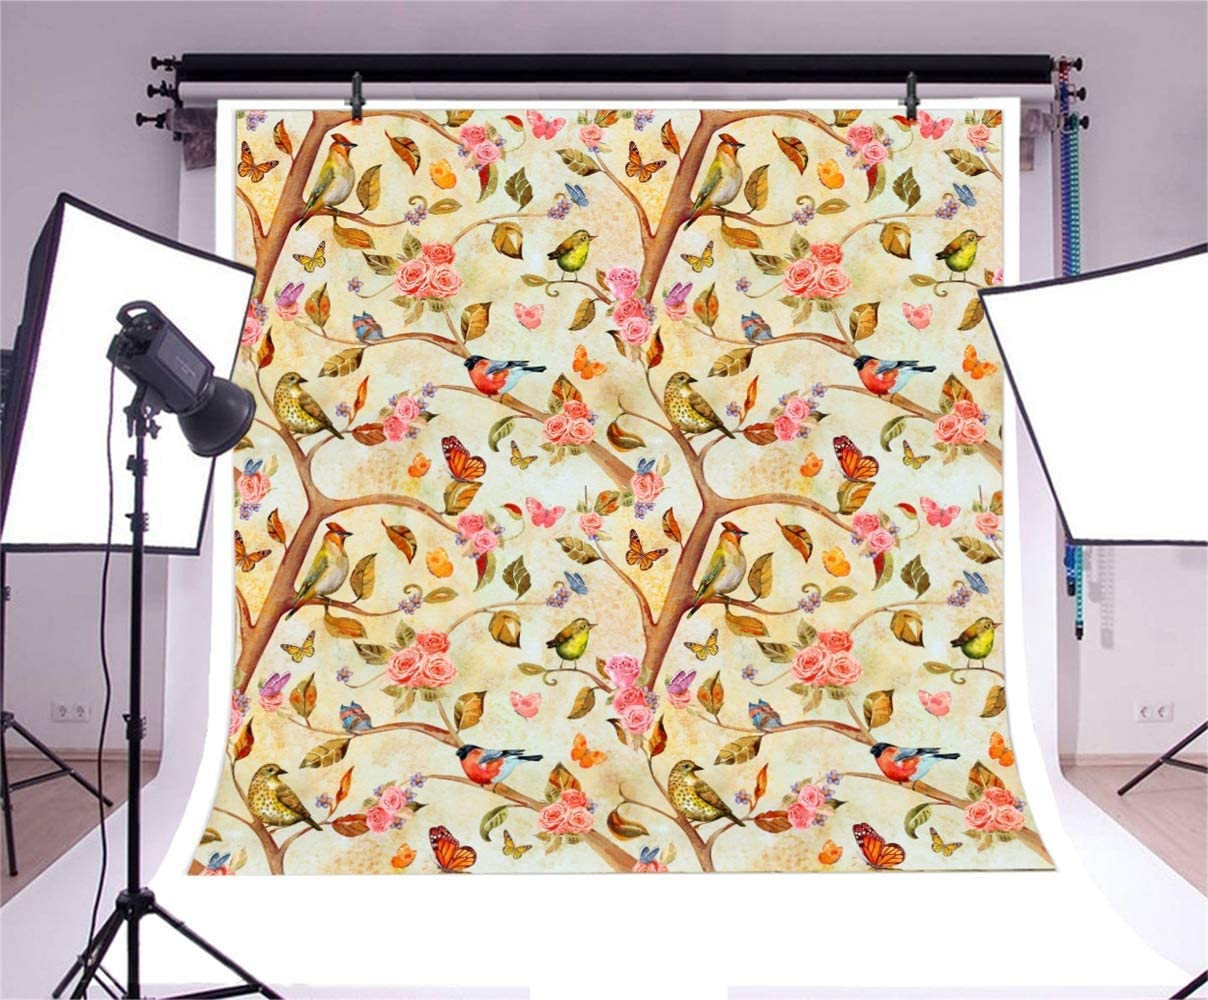 7x7ft Graceful Blooming Tree Branches Flowers Birds Illustration Polyester Photography Background Scenic Backdrop Portrait Shoot Birthday Banner Wallpaper YouTube Background